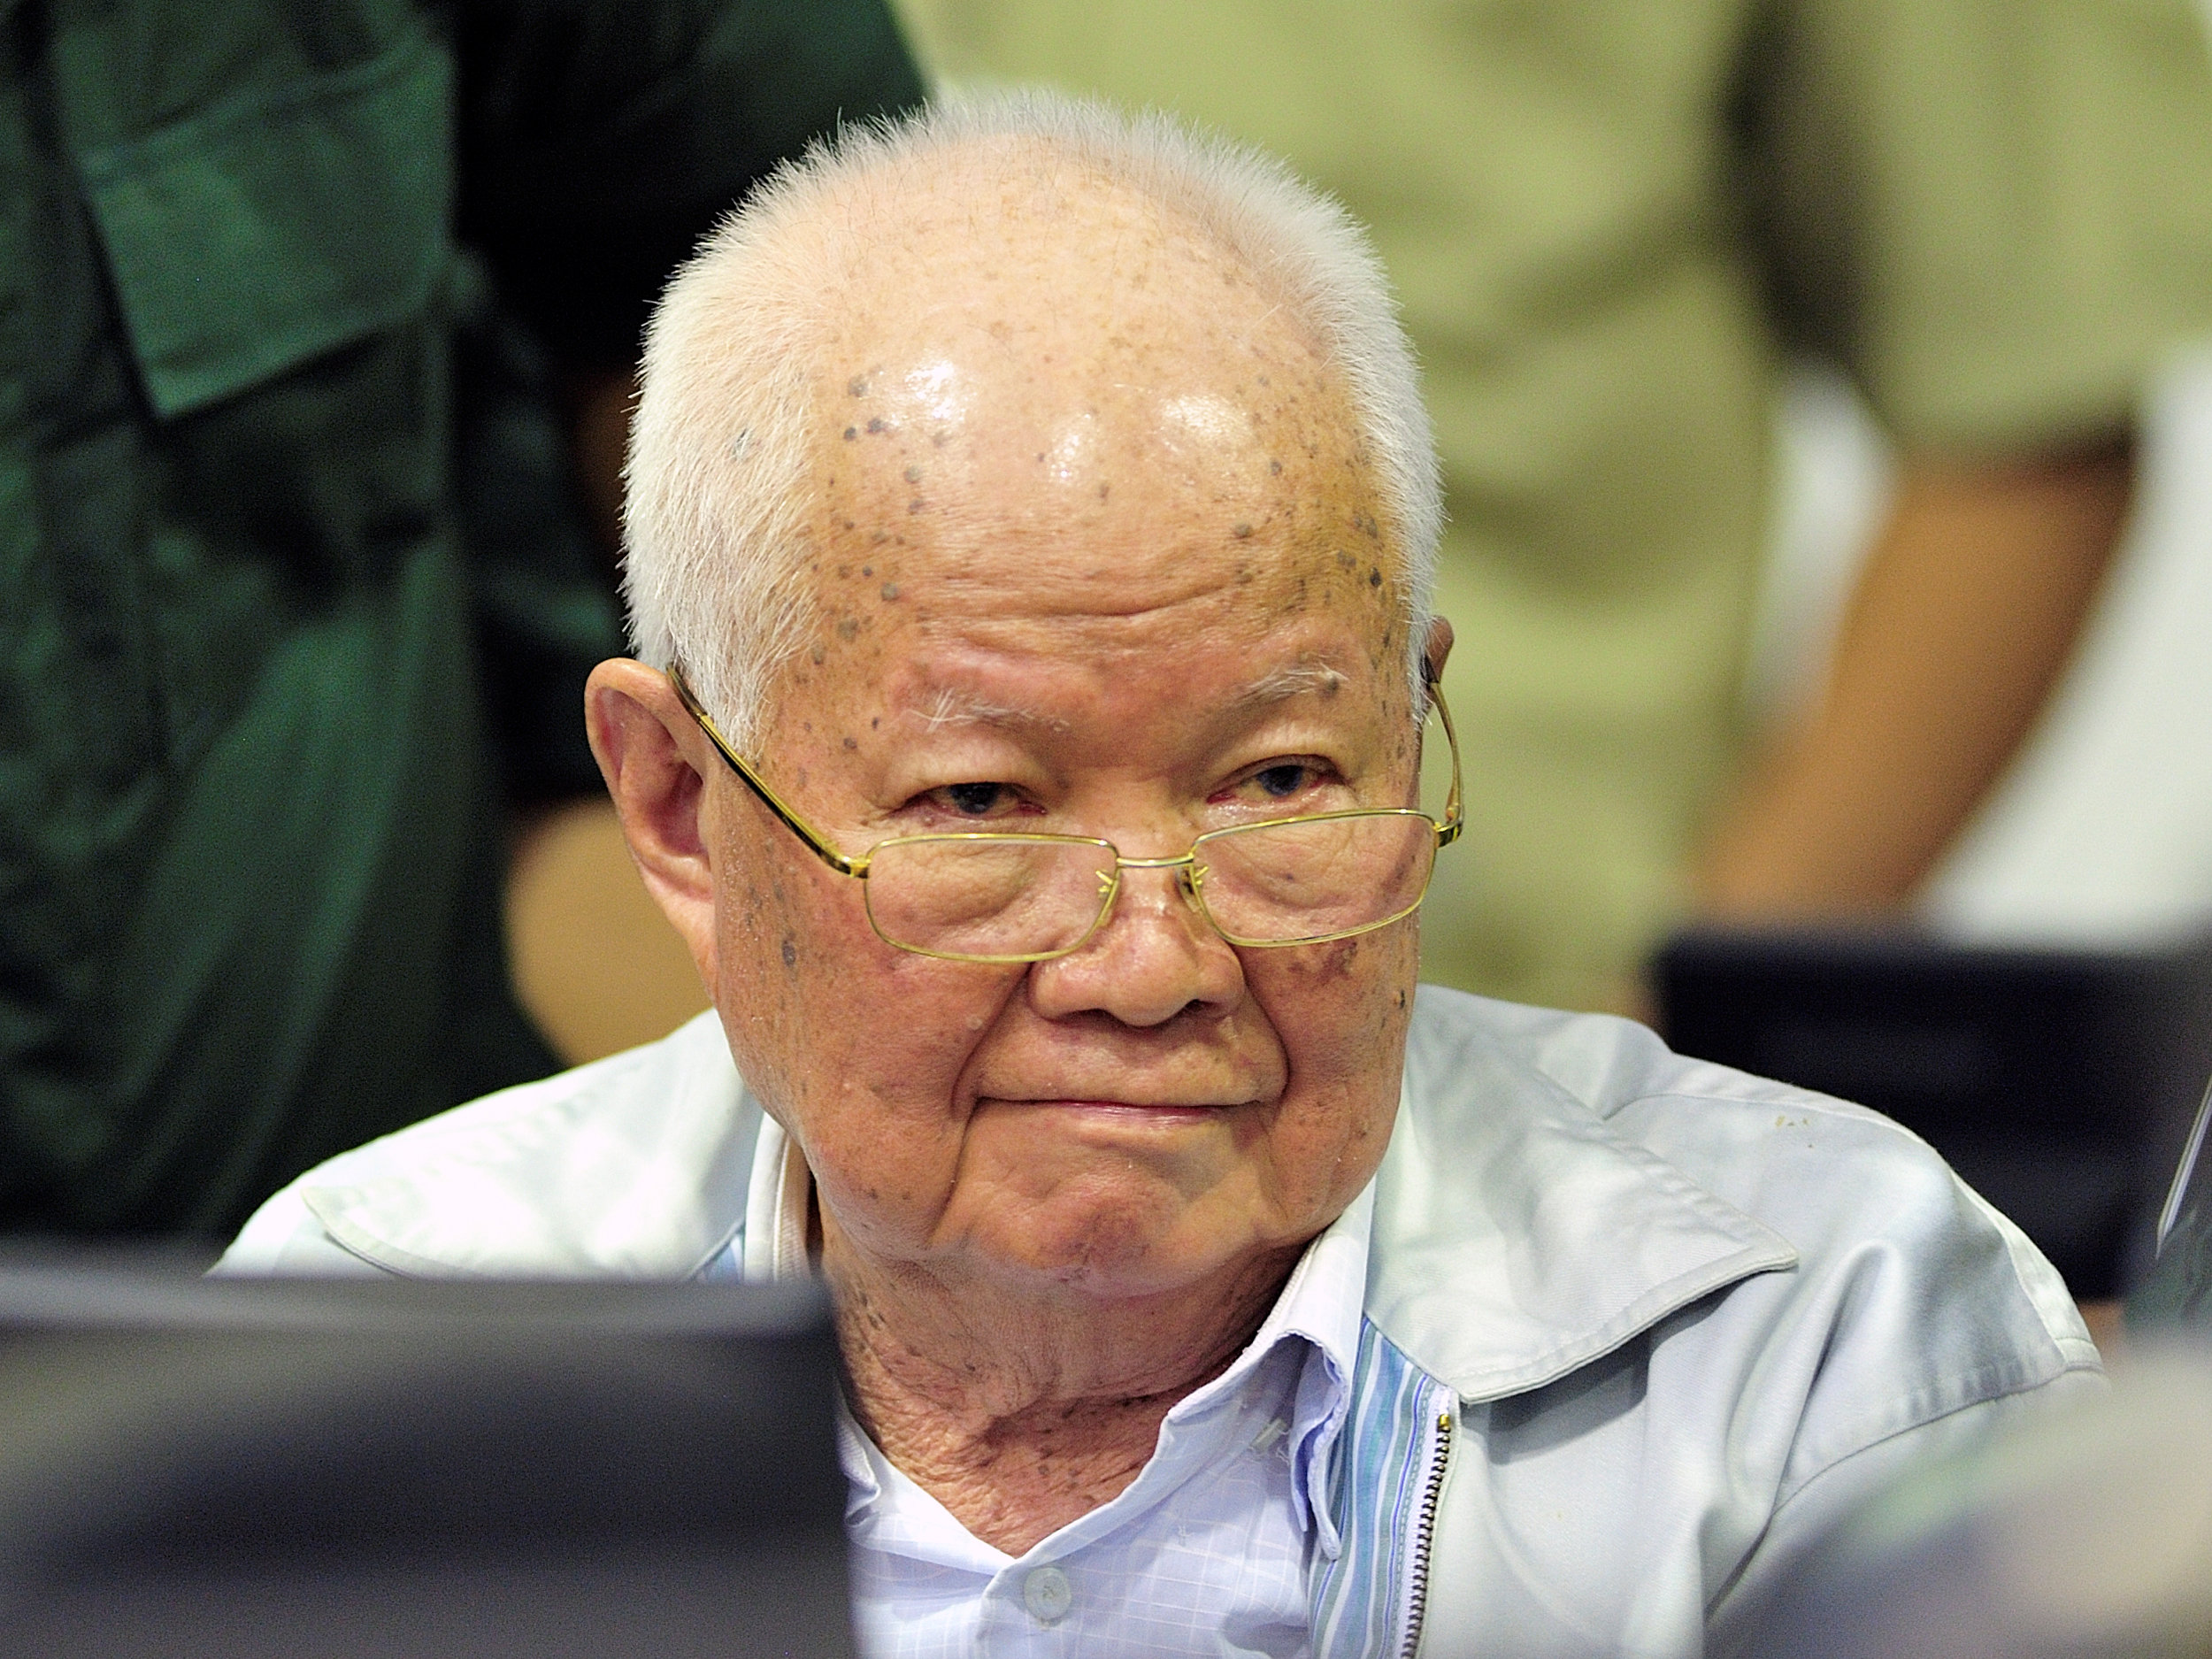 Former Khmer Rouge head of state Khieu Samphan inside the courtroom